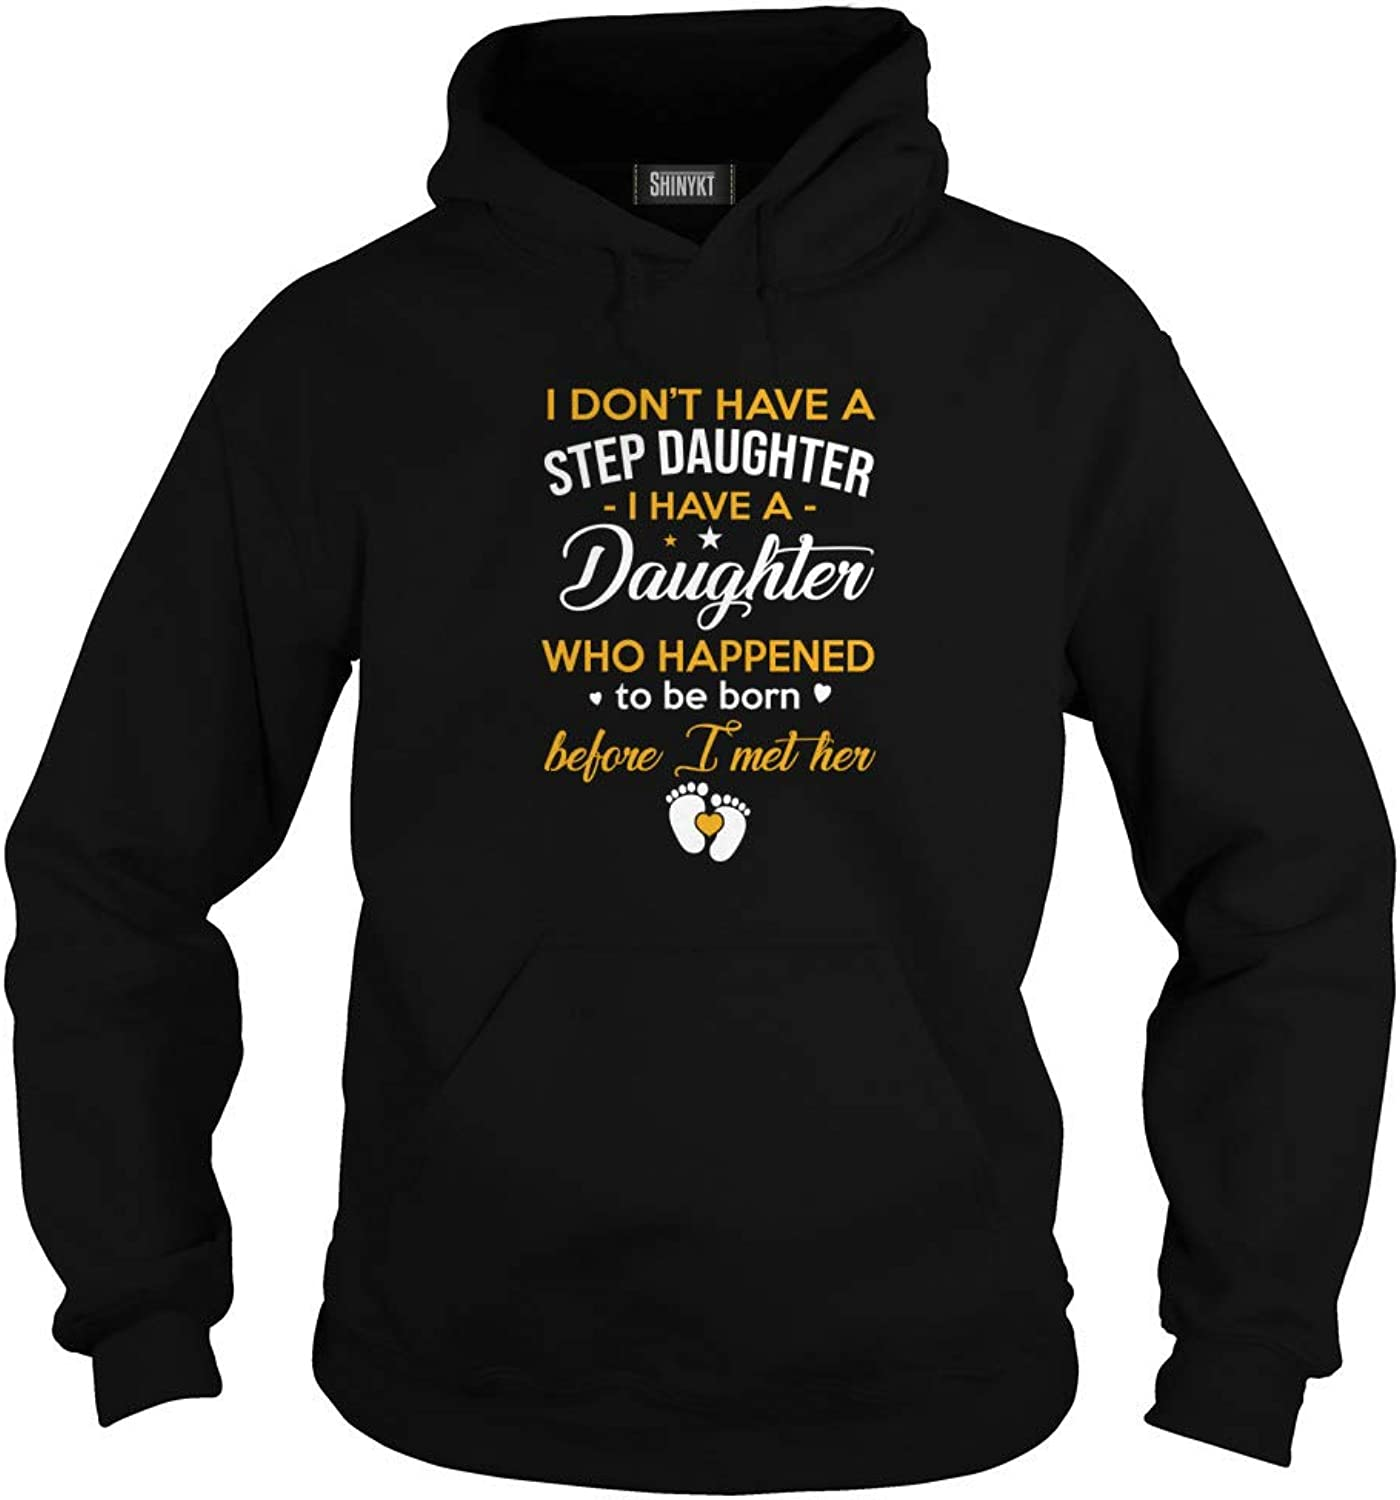 I Don't Have A Step Daughter Who Happened to Be Born Before I Met Her T-Shirt